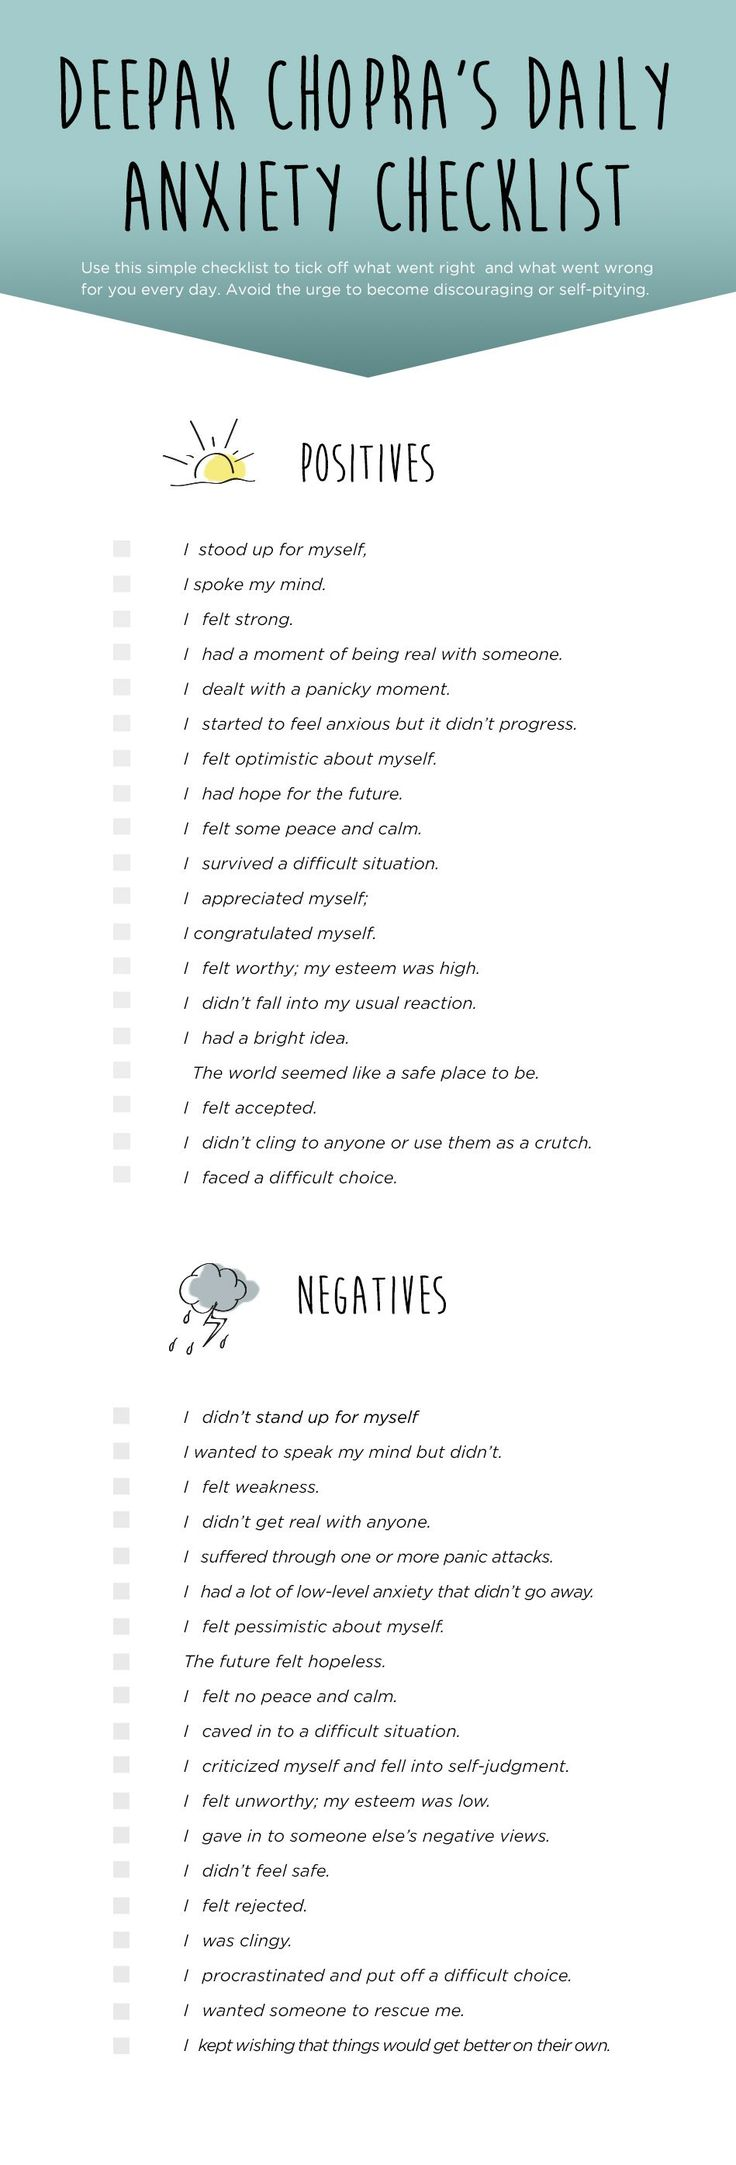 PIN IT: Deepak Chopra's Daily Checklist to End Anxiety    Keep a simple daily log to track the positive things you did to relieve your anxiety. It's also good to record the negative things. Rather than keeping a full-fledged journal, which most people can't find the time to sustain after a few weeks or months, make your log a simple check list, ticking off what went right and what went wrong.